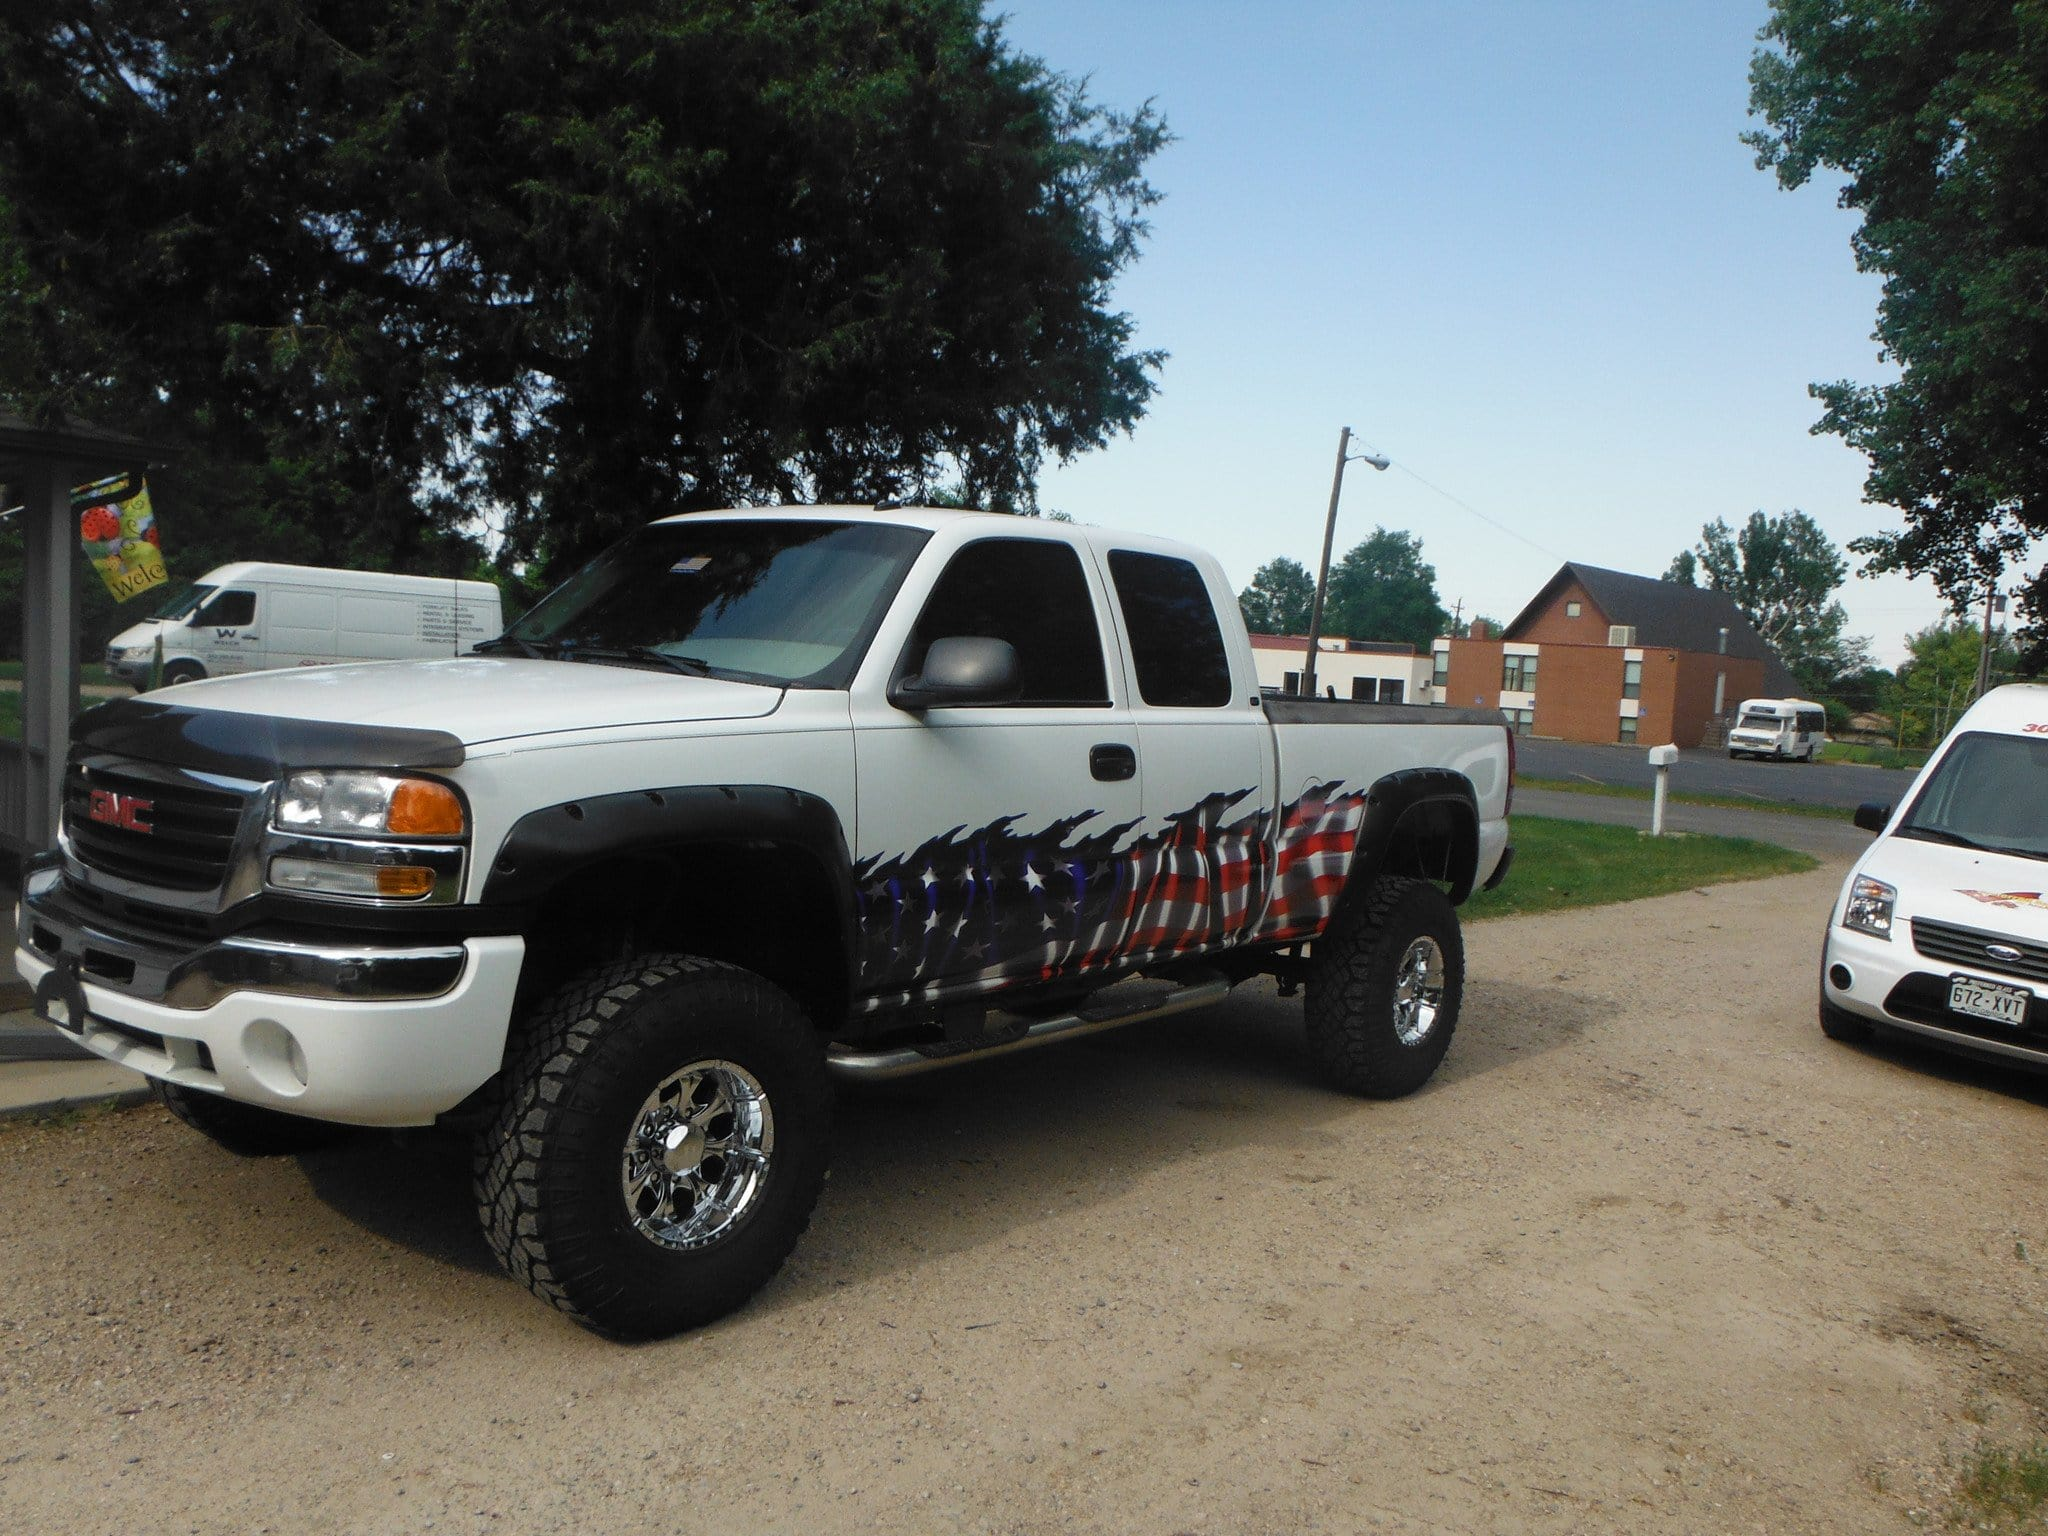 American Flag Wrap For Trucks Vehicle Side Wrap Usa